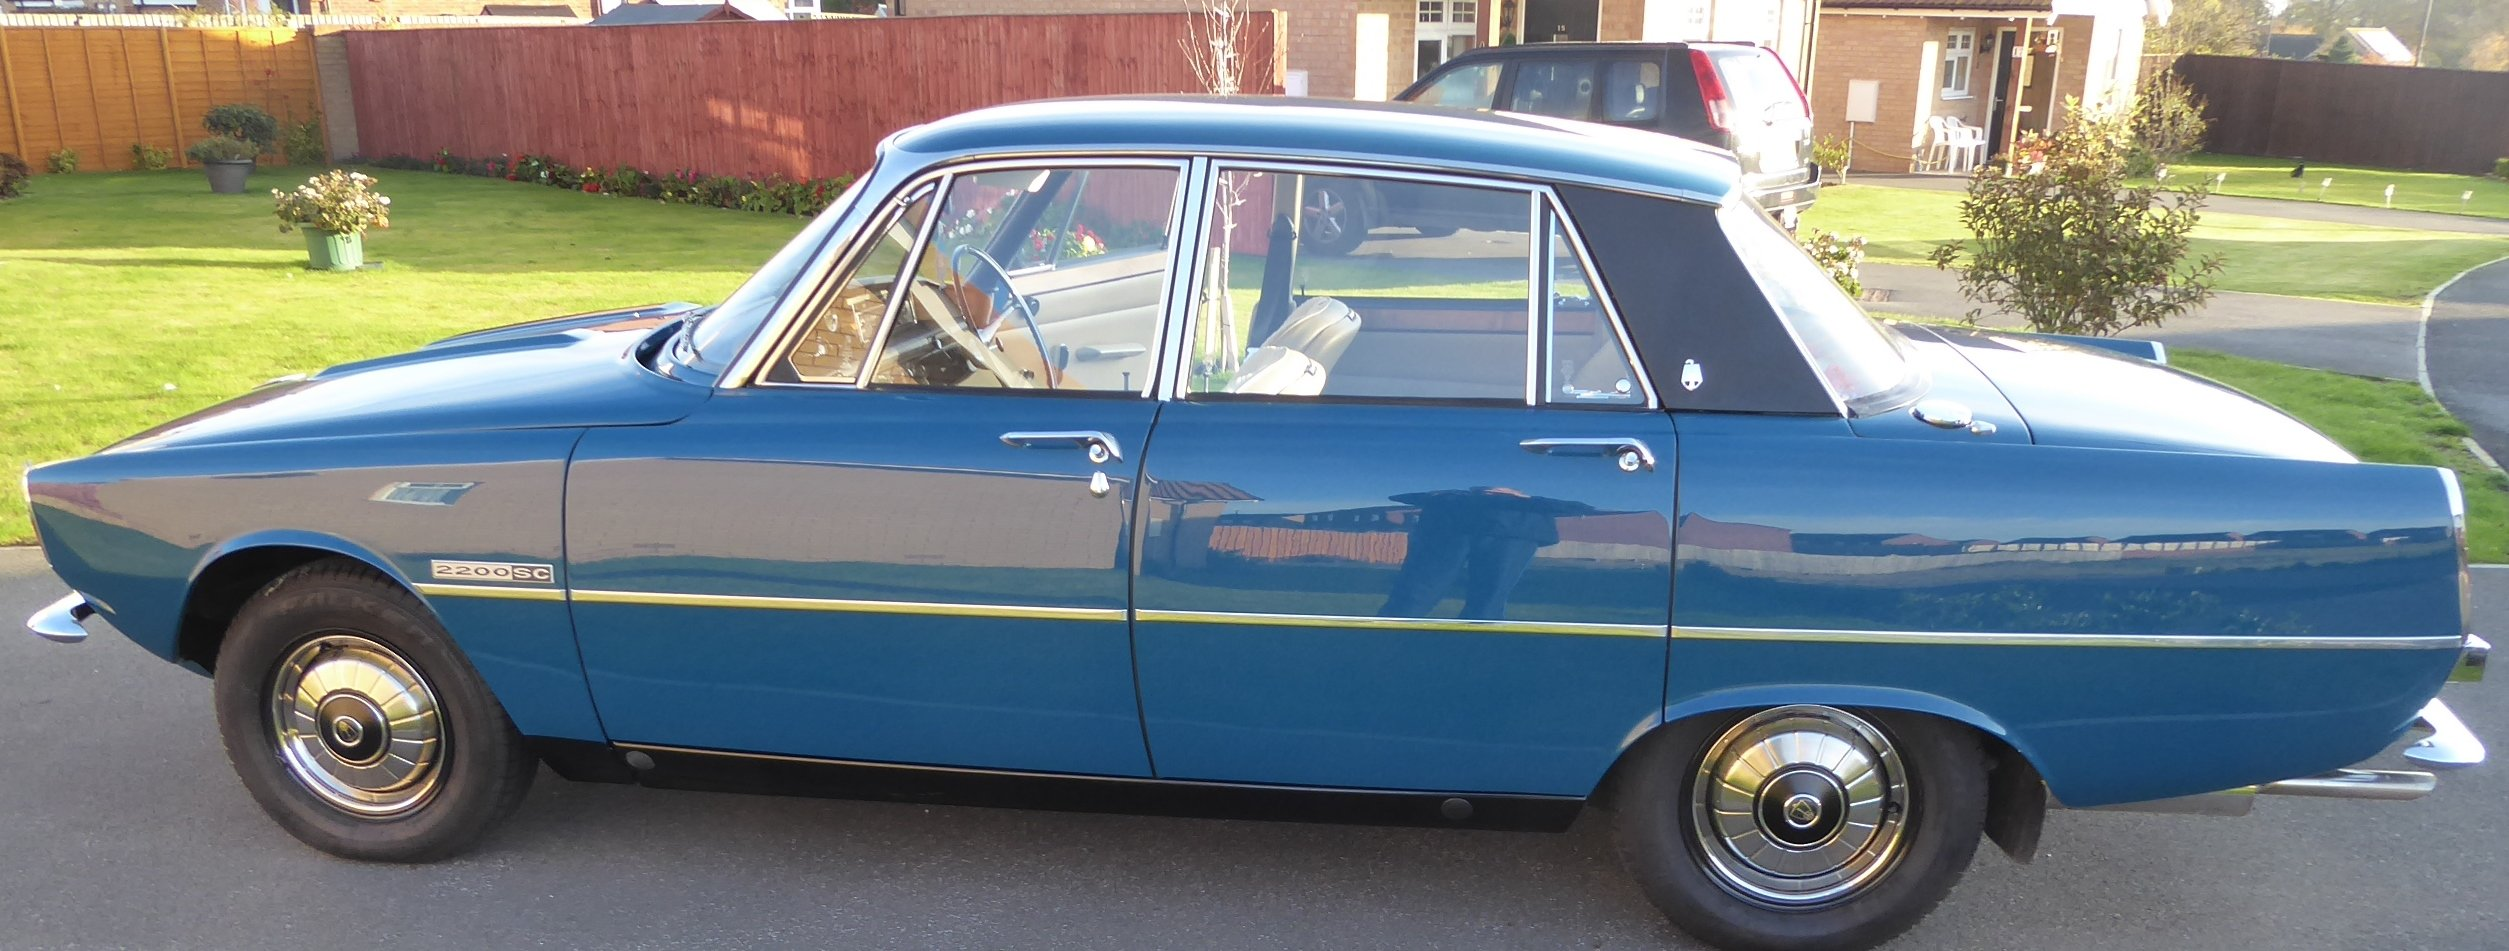 1975 Rover 2200 SC ( Manual Gearbox) Single carburetor. For Sale (picture 3 of 6)